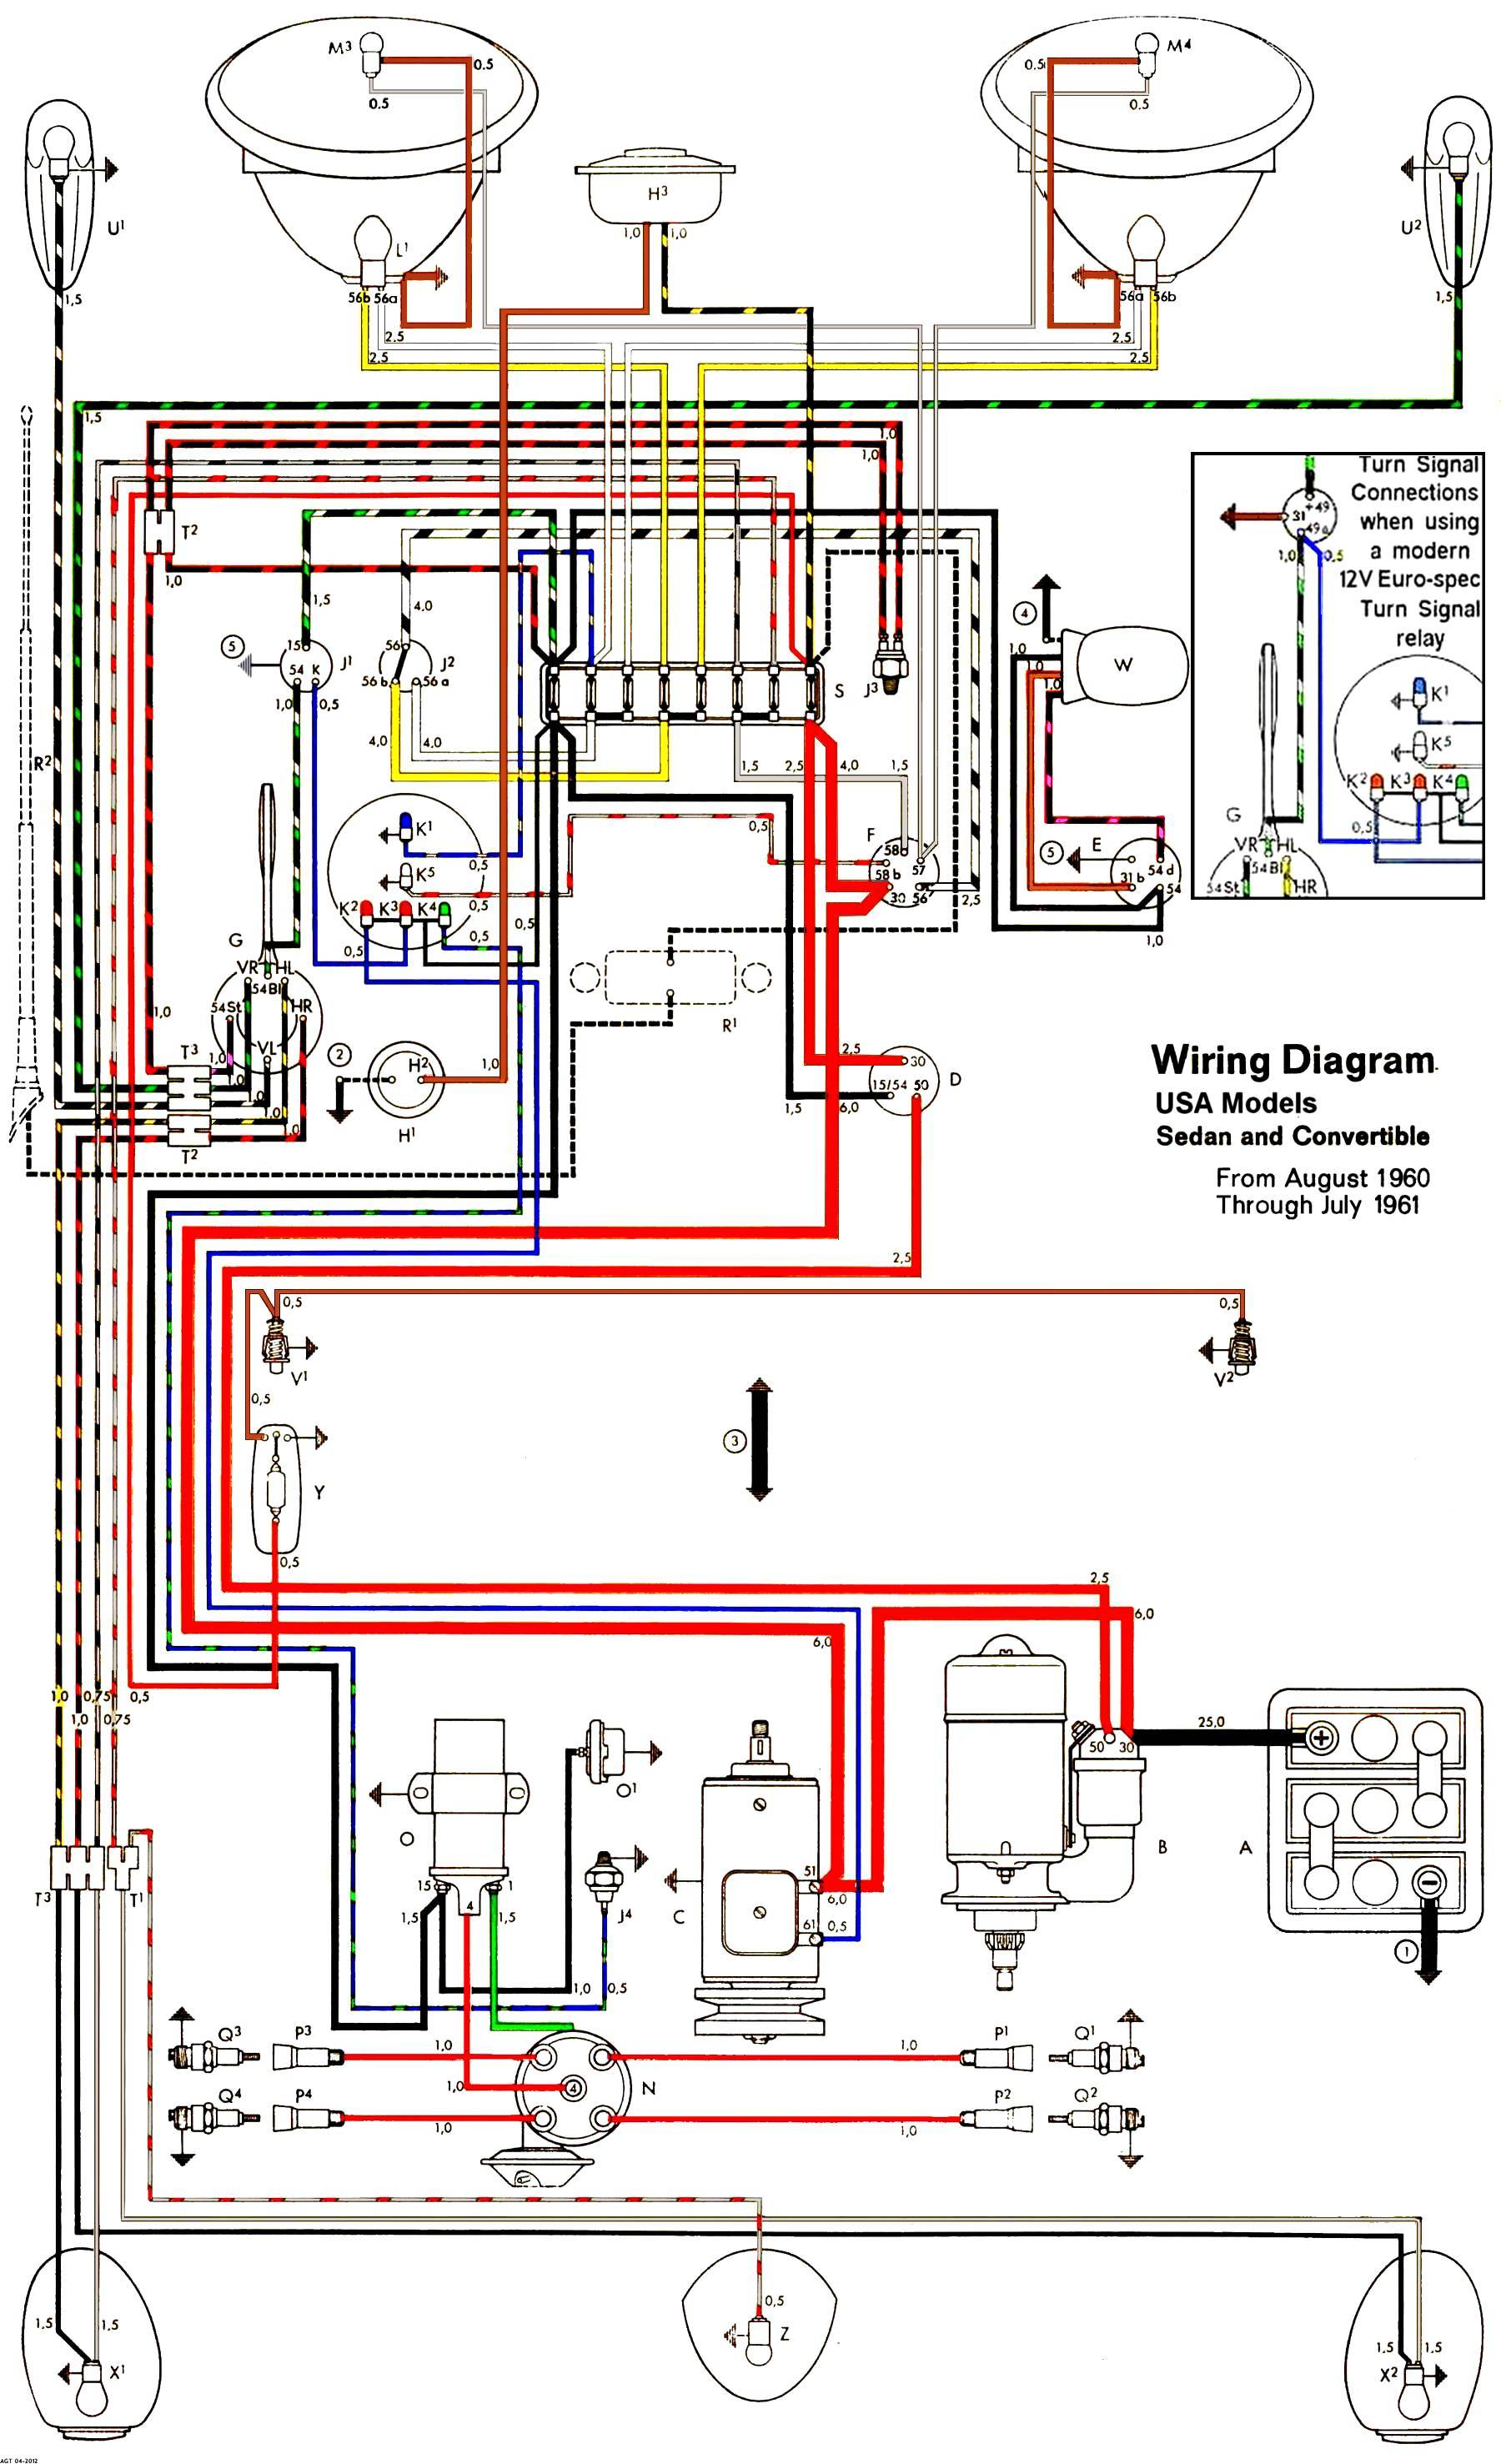 74 Vw Beetle Wiring Diagram Opinions About Diagrams Impala Windowiring Thesamba Com Type 1 Rh 1974 Volkswagen Super Bug Fuse